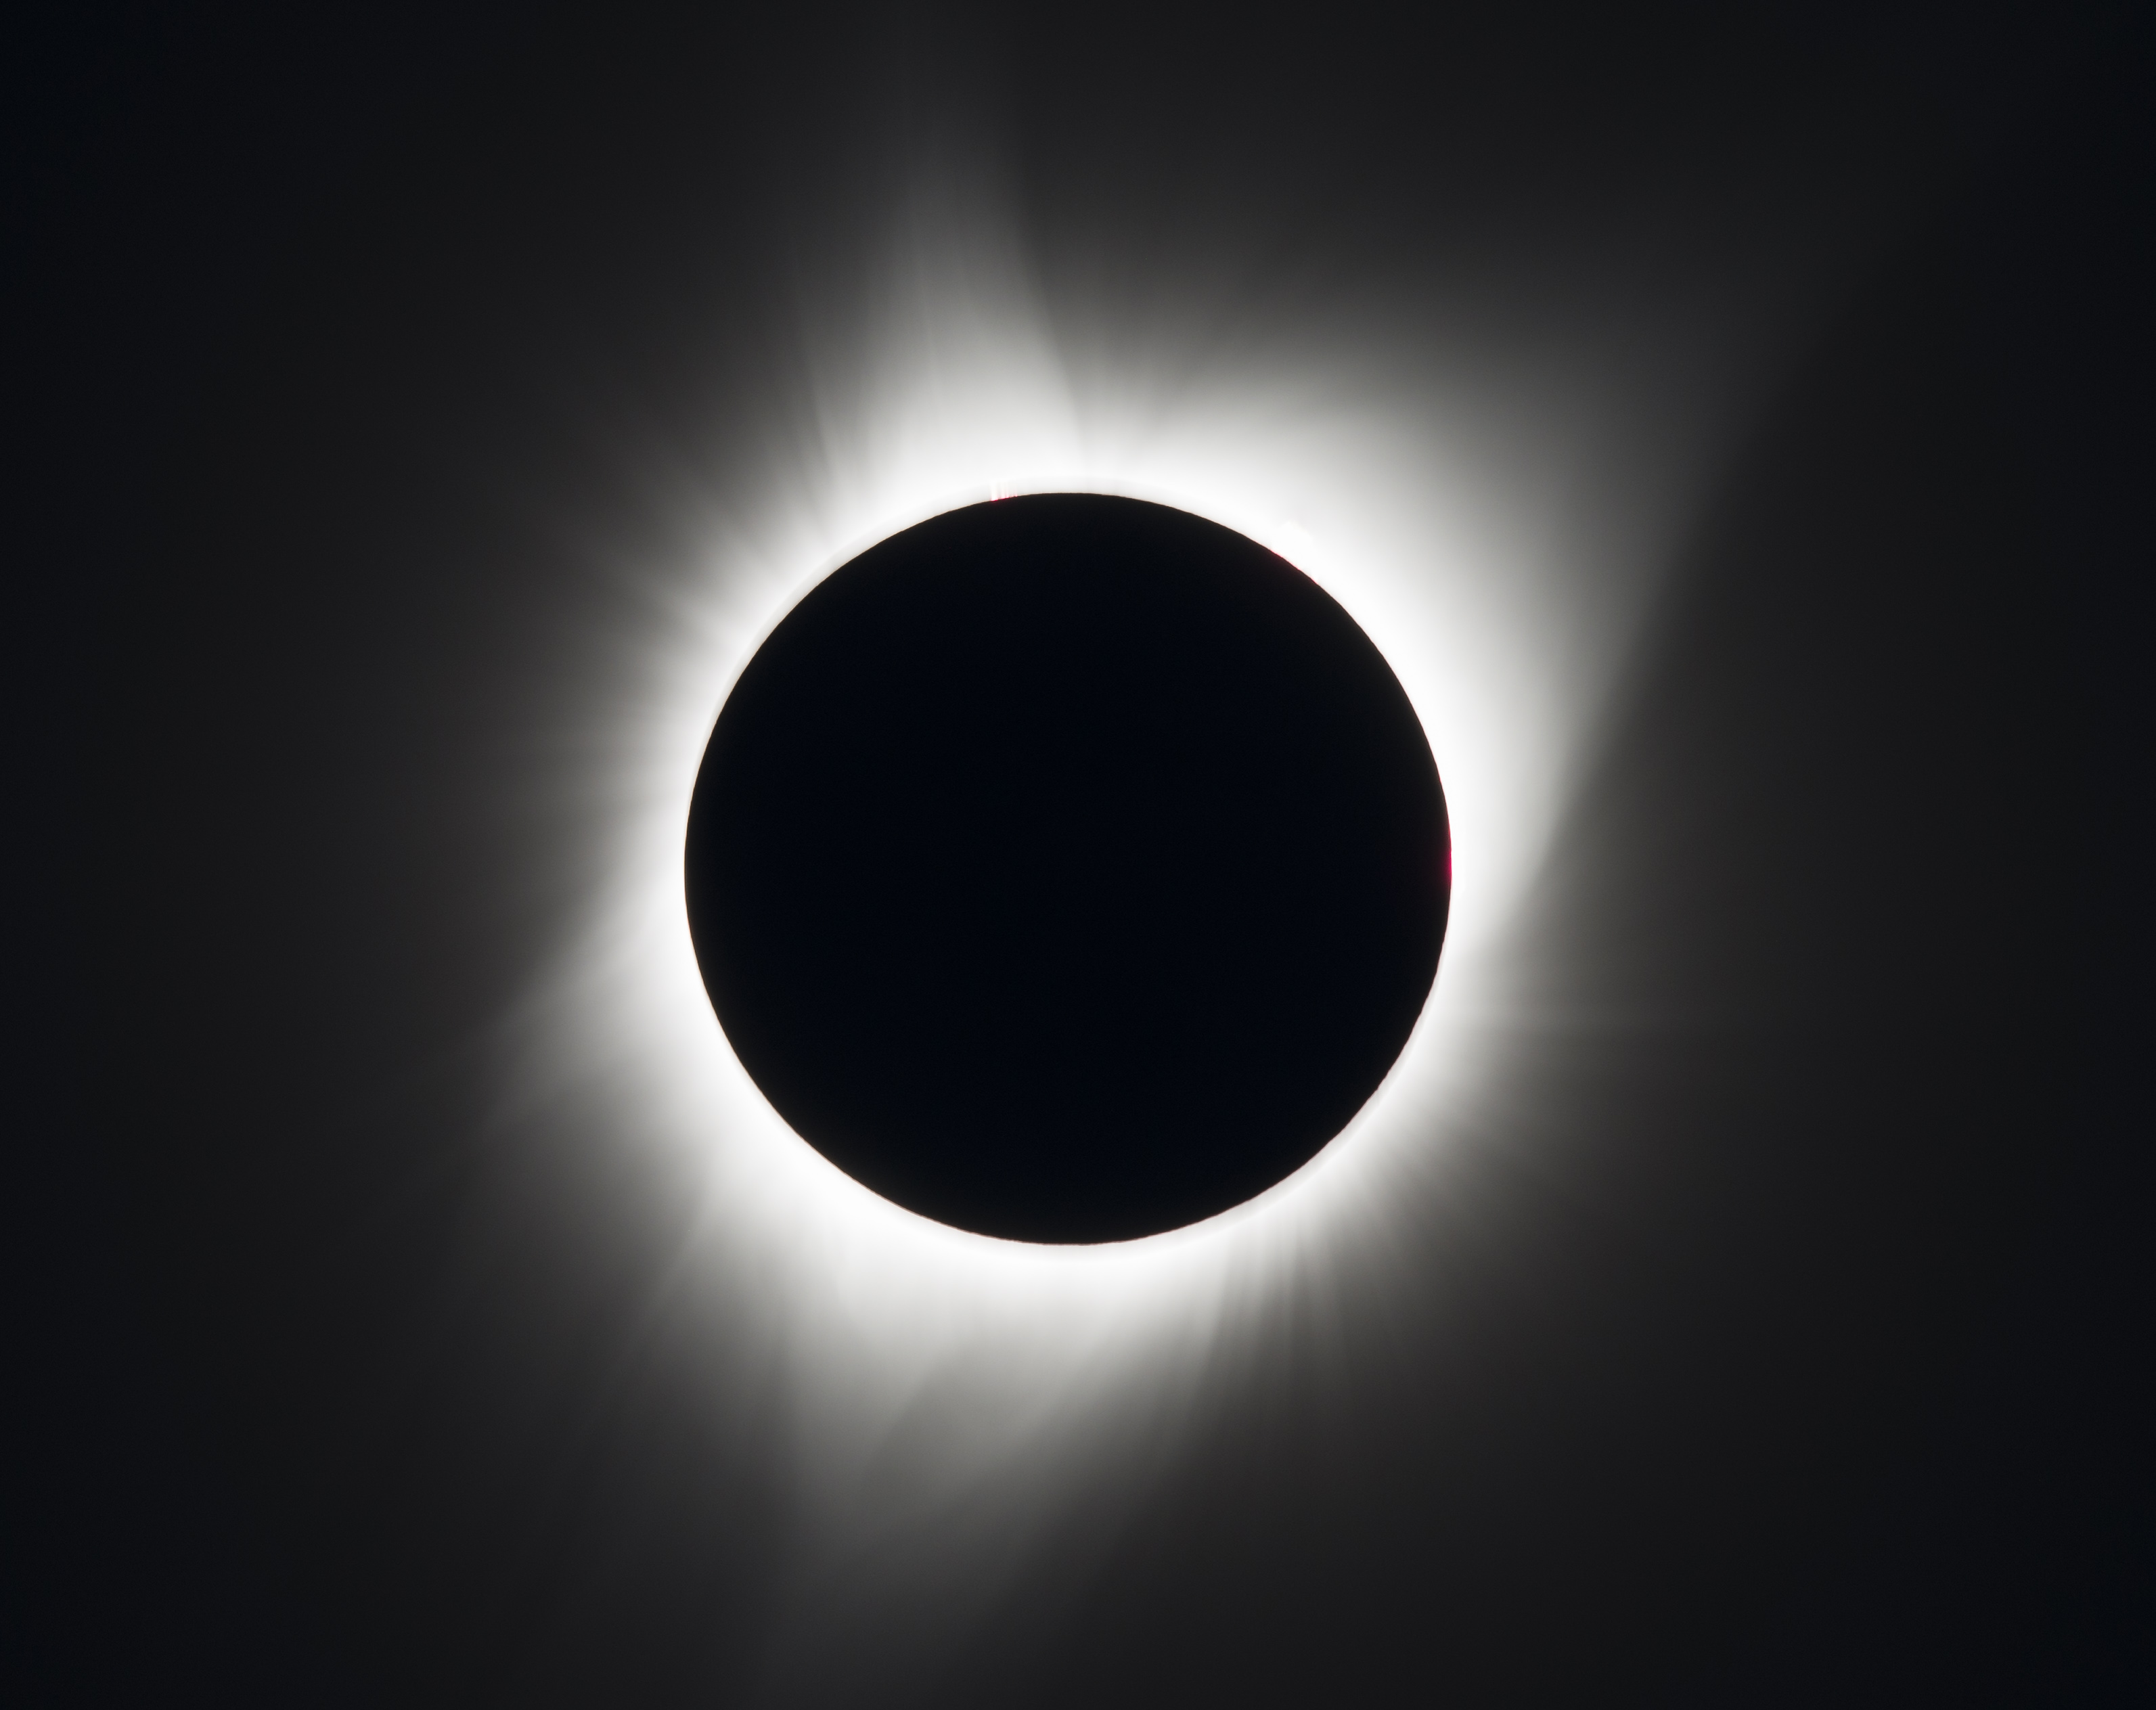 sun blocked by moon in total eclipse, with just corona visible